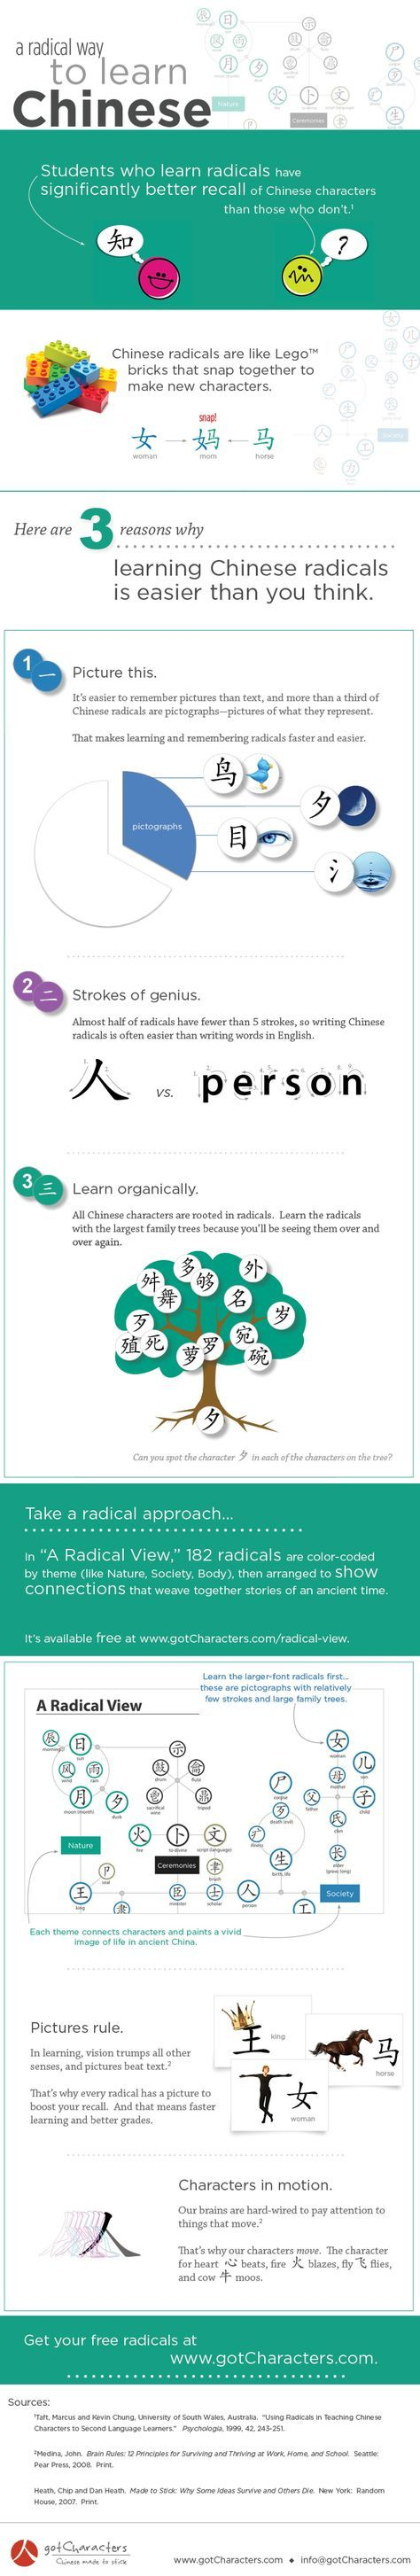 An Easy Way To Learn Chinese | Chinese | Pinterest | Learning, Easy ...